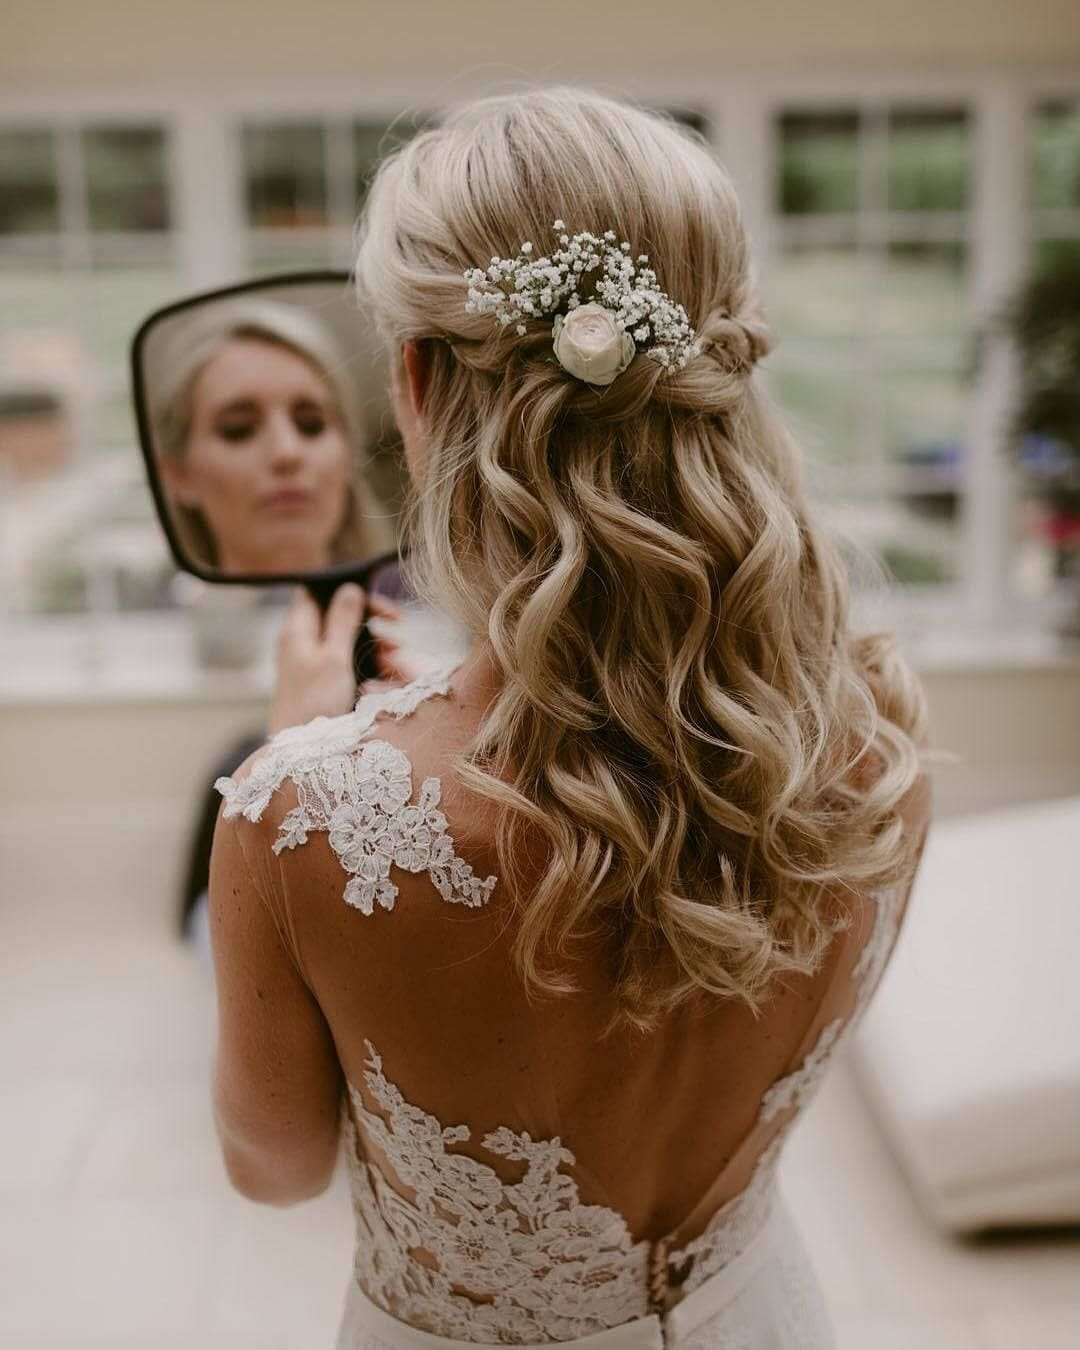 40 Stunning Wedding Hairstyles That A Girl Needs Hairstyles Hairstyles For Medium Length Hair Medium Length Hair Styles Bride Hairstyles Medium Hair Styles